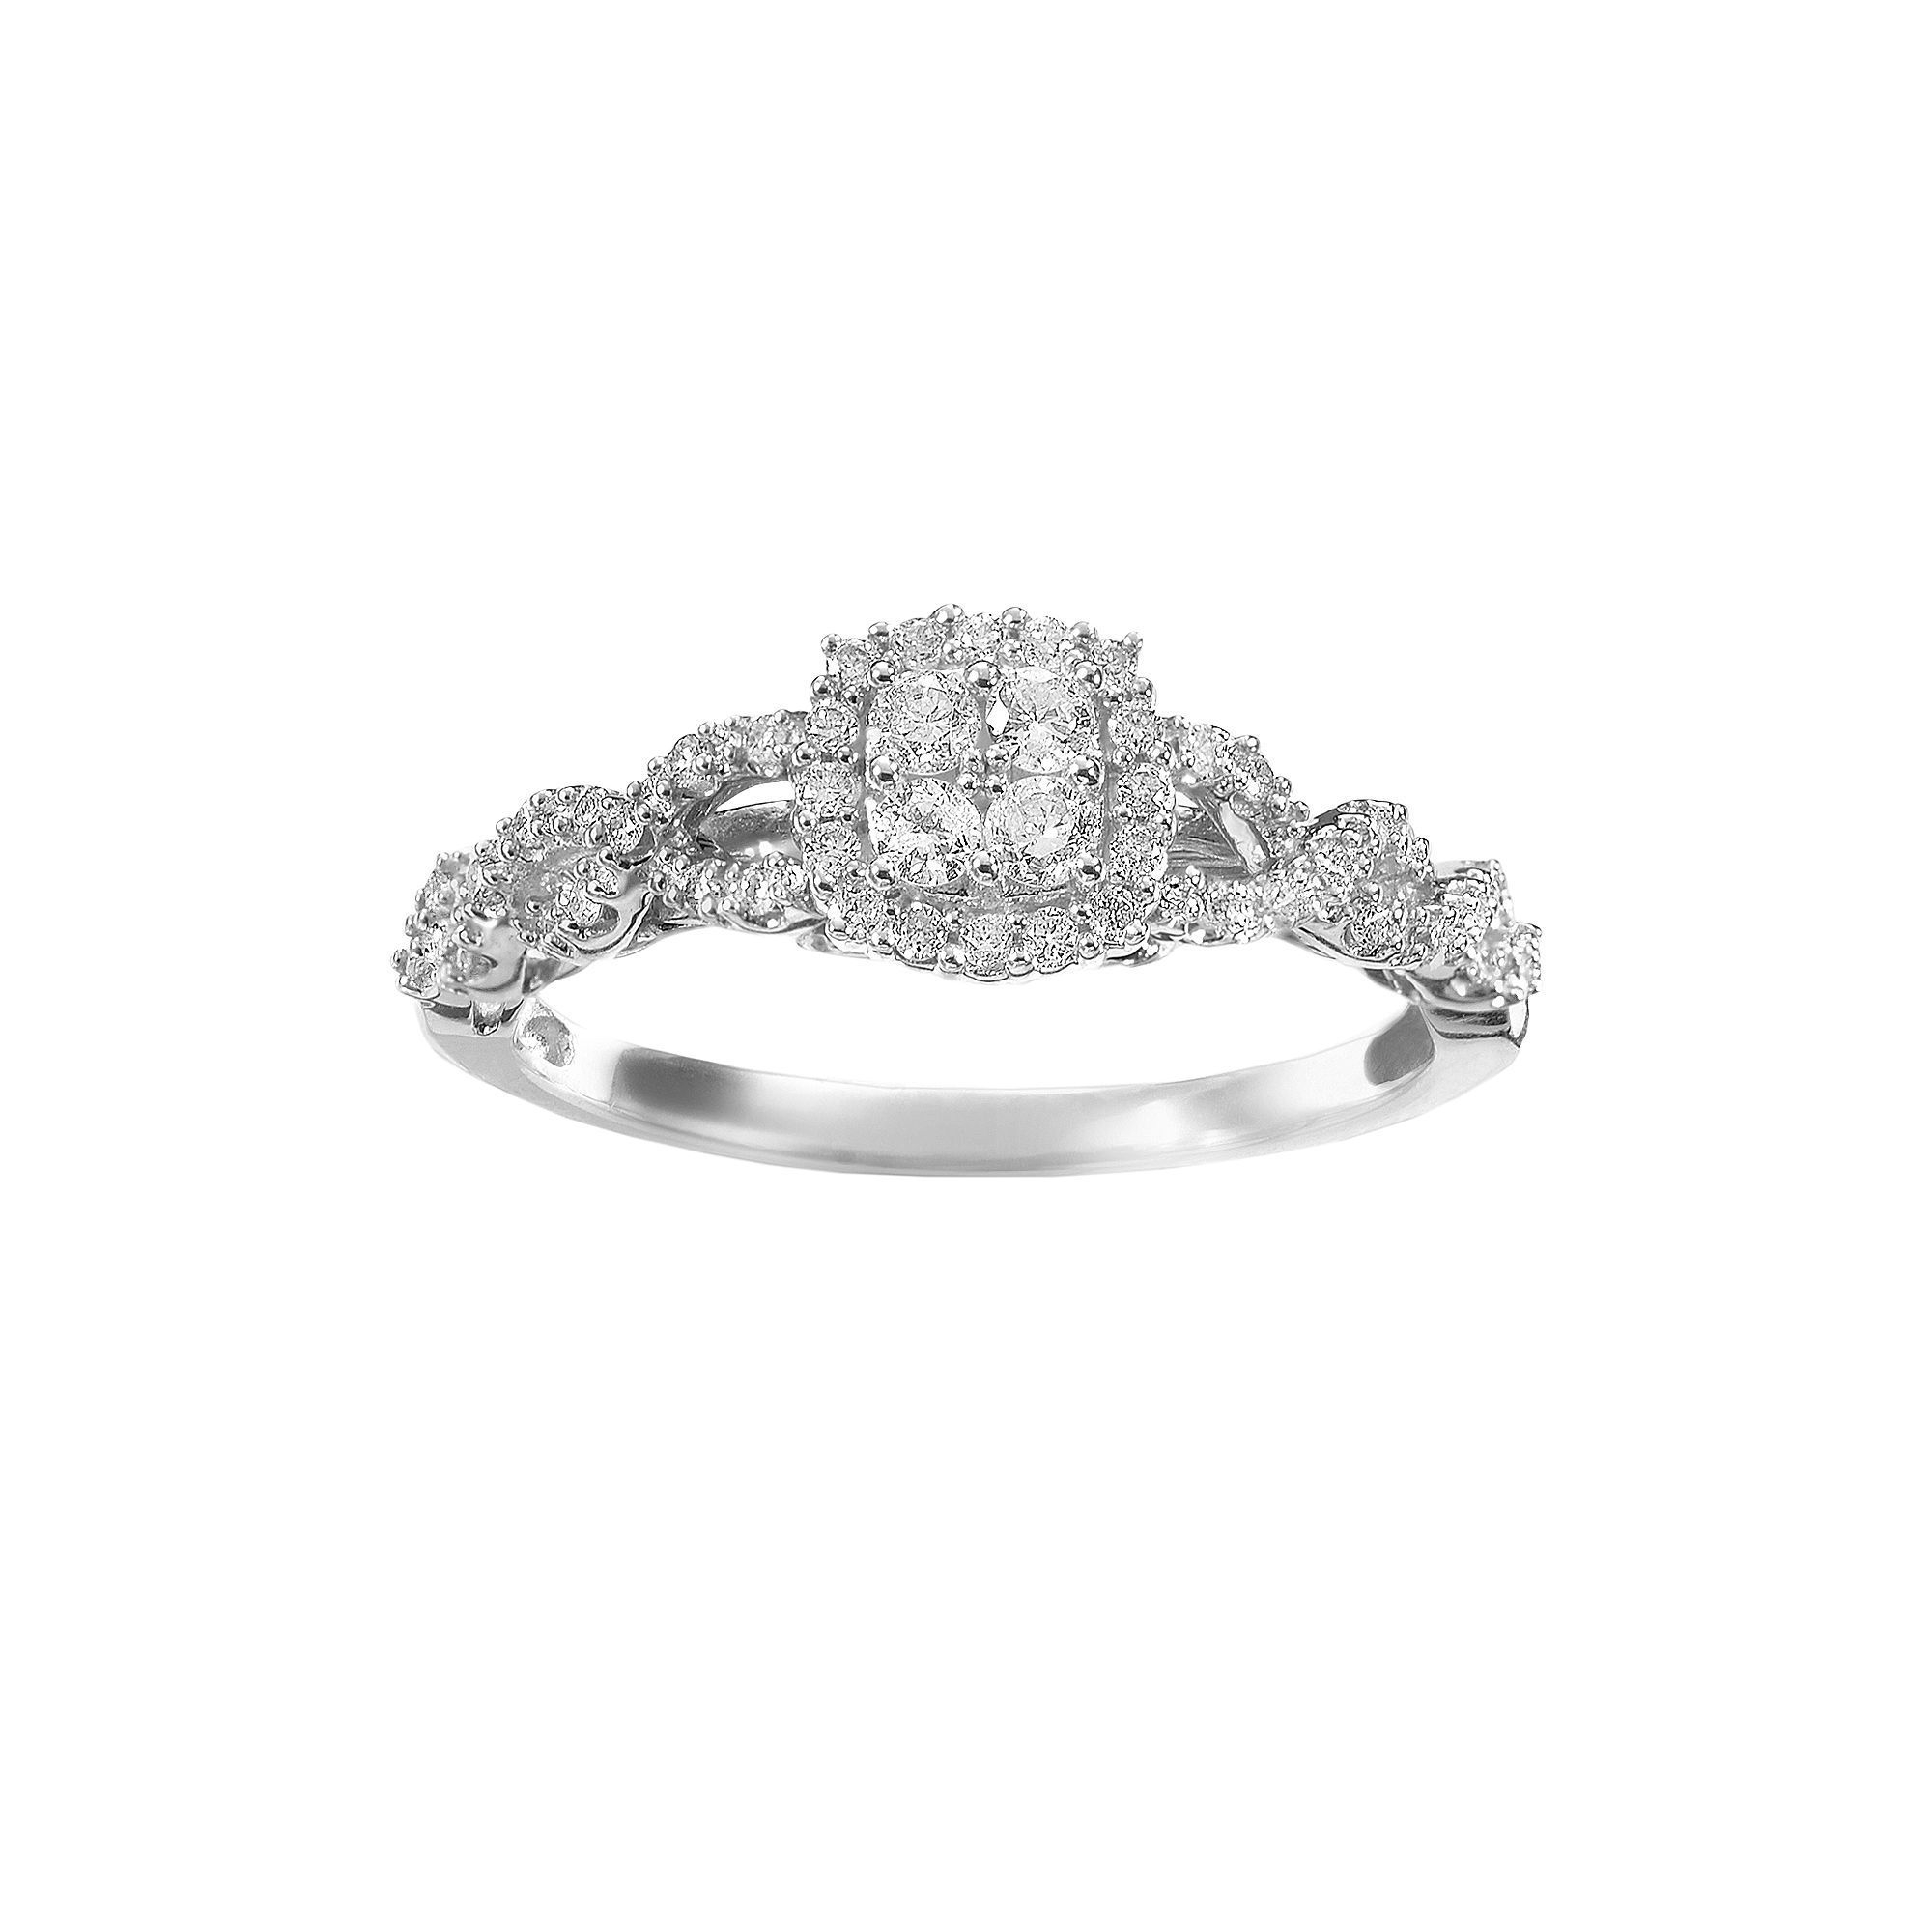 Simply Vera Vera Wang Diamond Twist Frame Engagement Ring In 14k Throughout Most Recently Released Oval Diamond Double Frame Twist Vintage Style Bridal Rings In 14k White Gold (View 4 of 15)